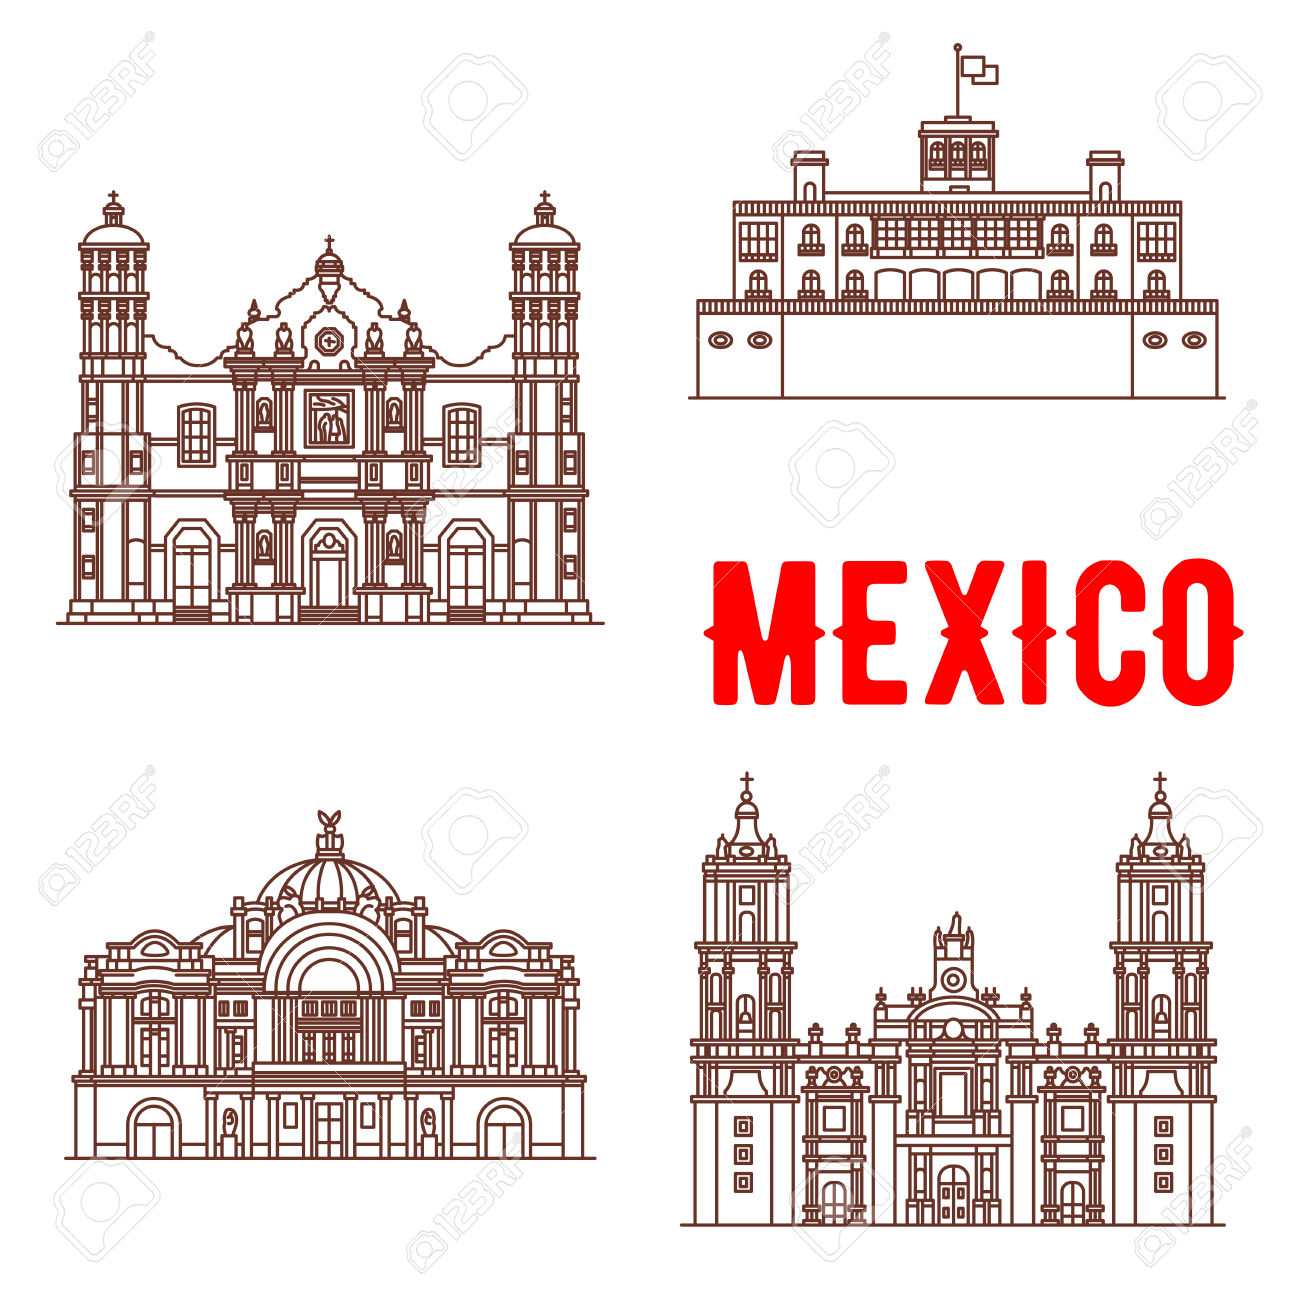 Mexican Architecture Vector Icons. Our Lady Of Guadalupe Basilica.